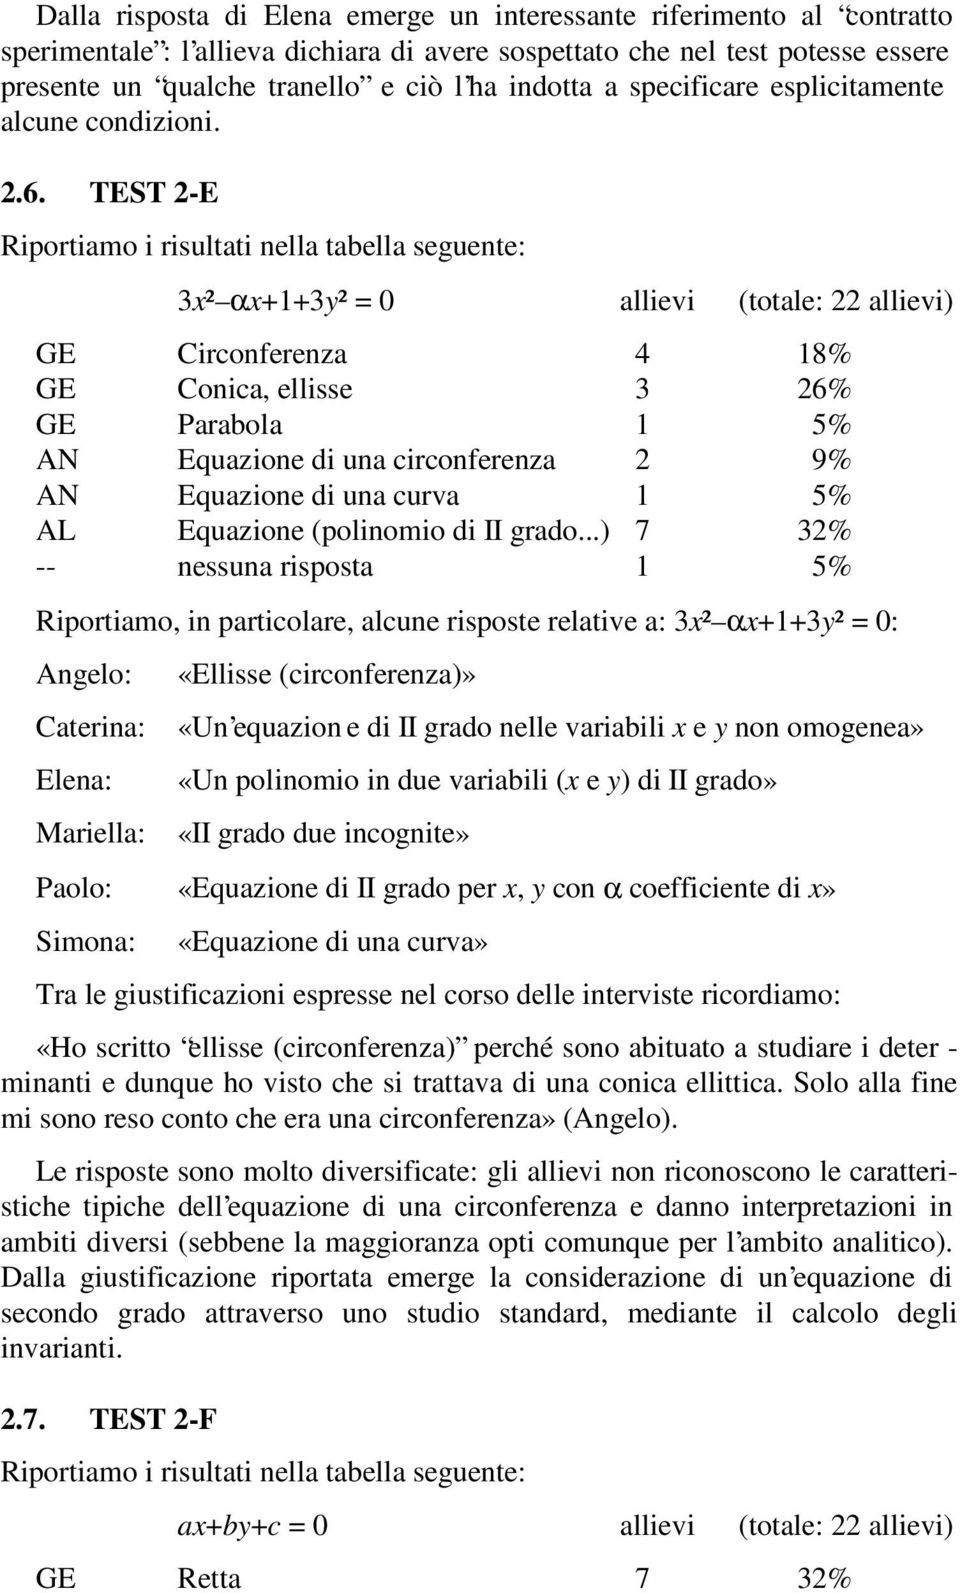 TEST 2-E 3x² αx+1+3y² = 0 allievi (totale: 22 allievi) GE Circonferenza 4 18% GE Conica, ellisse 3 26% GE Parabola 1 5% AN Equazione di una circonferenza 2 9% AN Equazione di una curva 1 5% AL